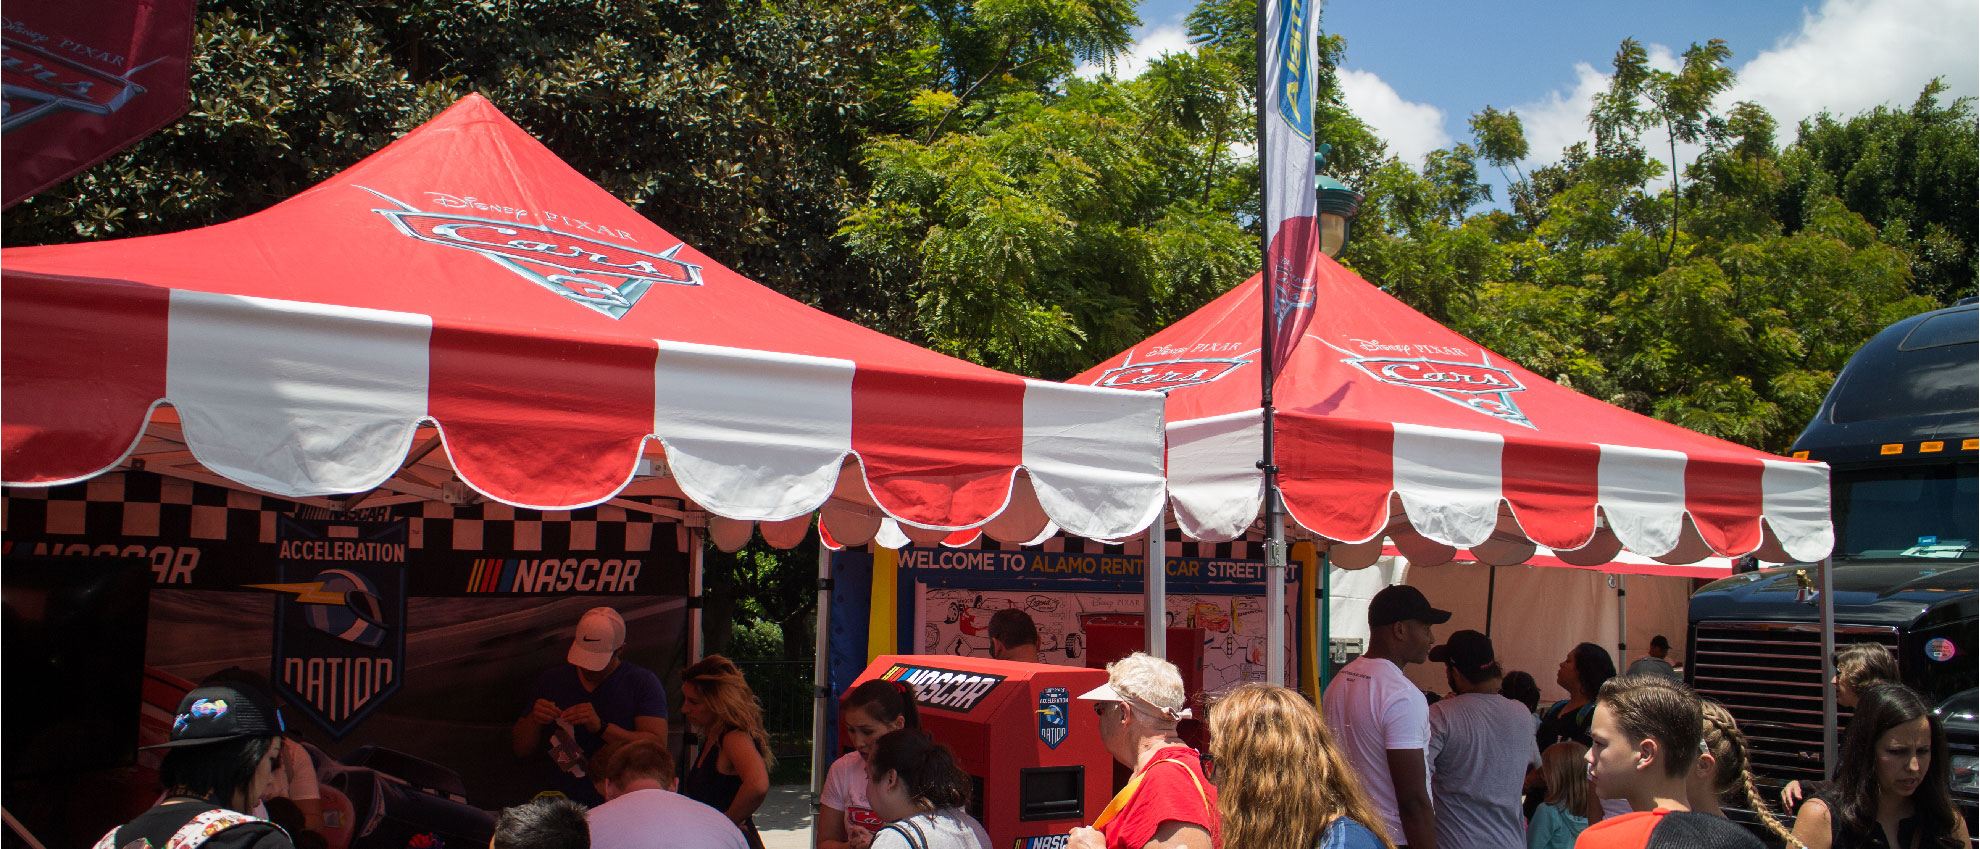 Disney cars 3 custom canopies installed at a tour where people get to interact and learn more about the movie coming up